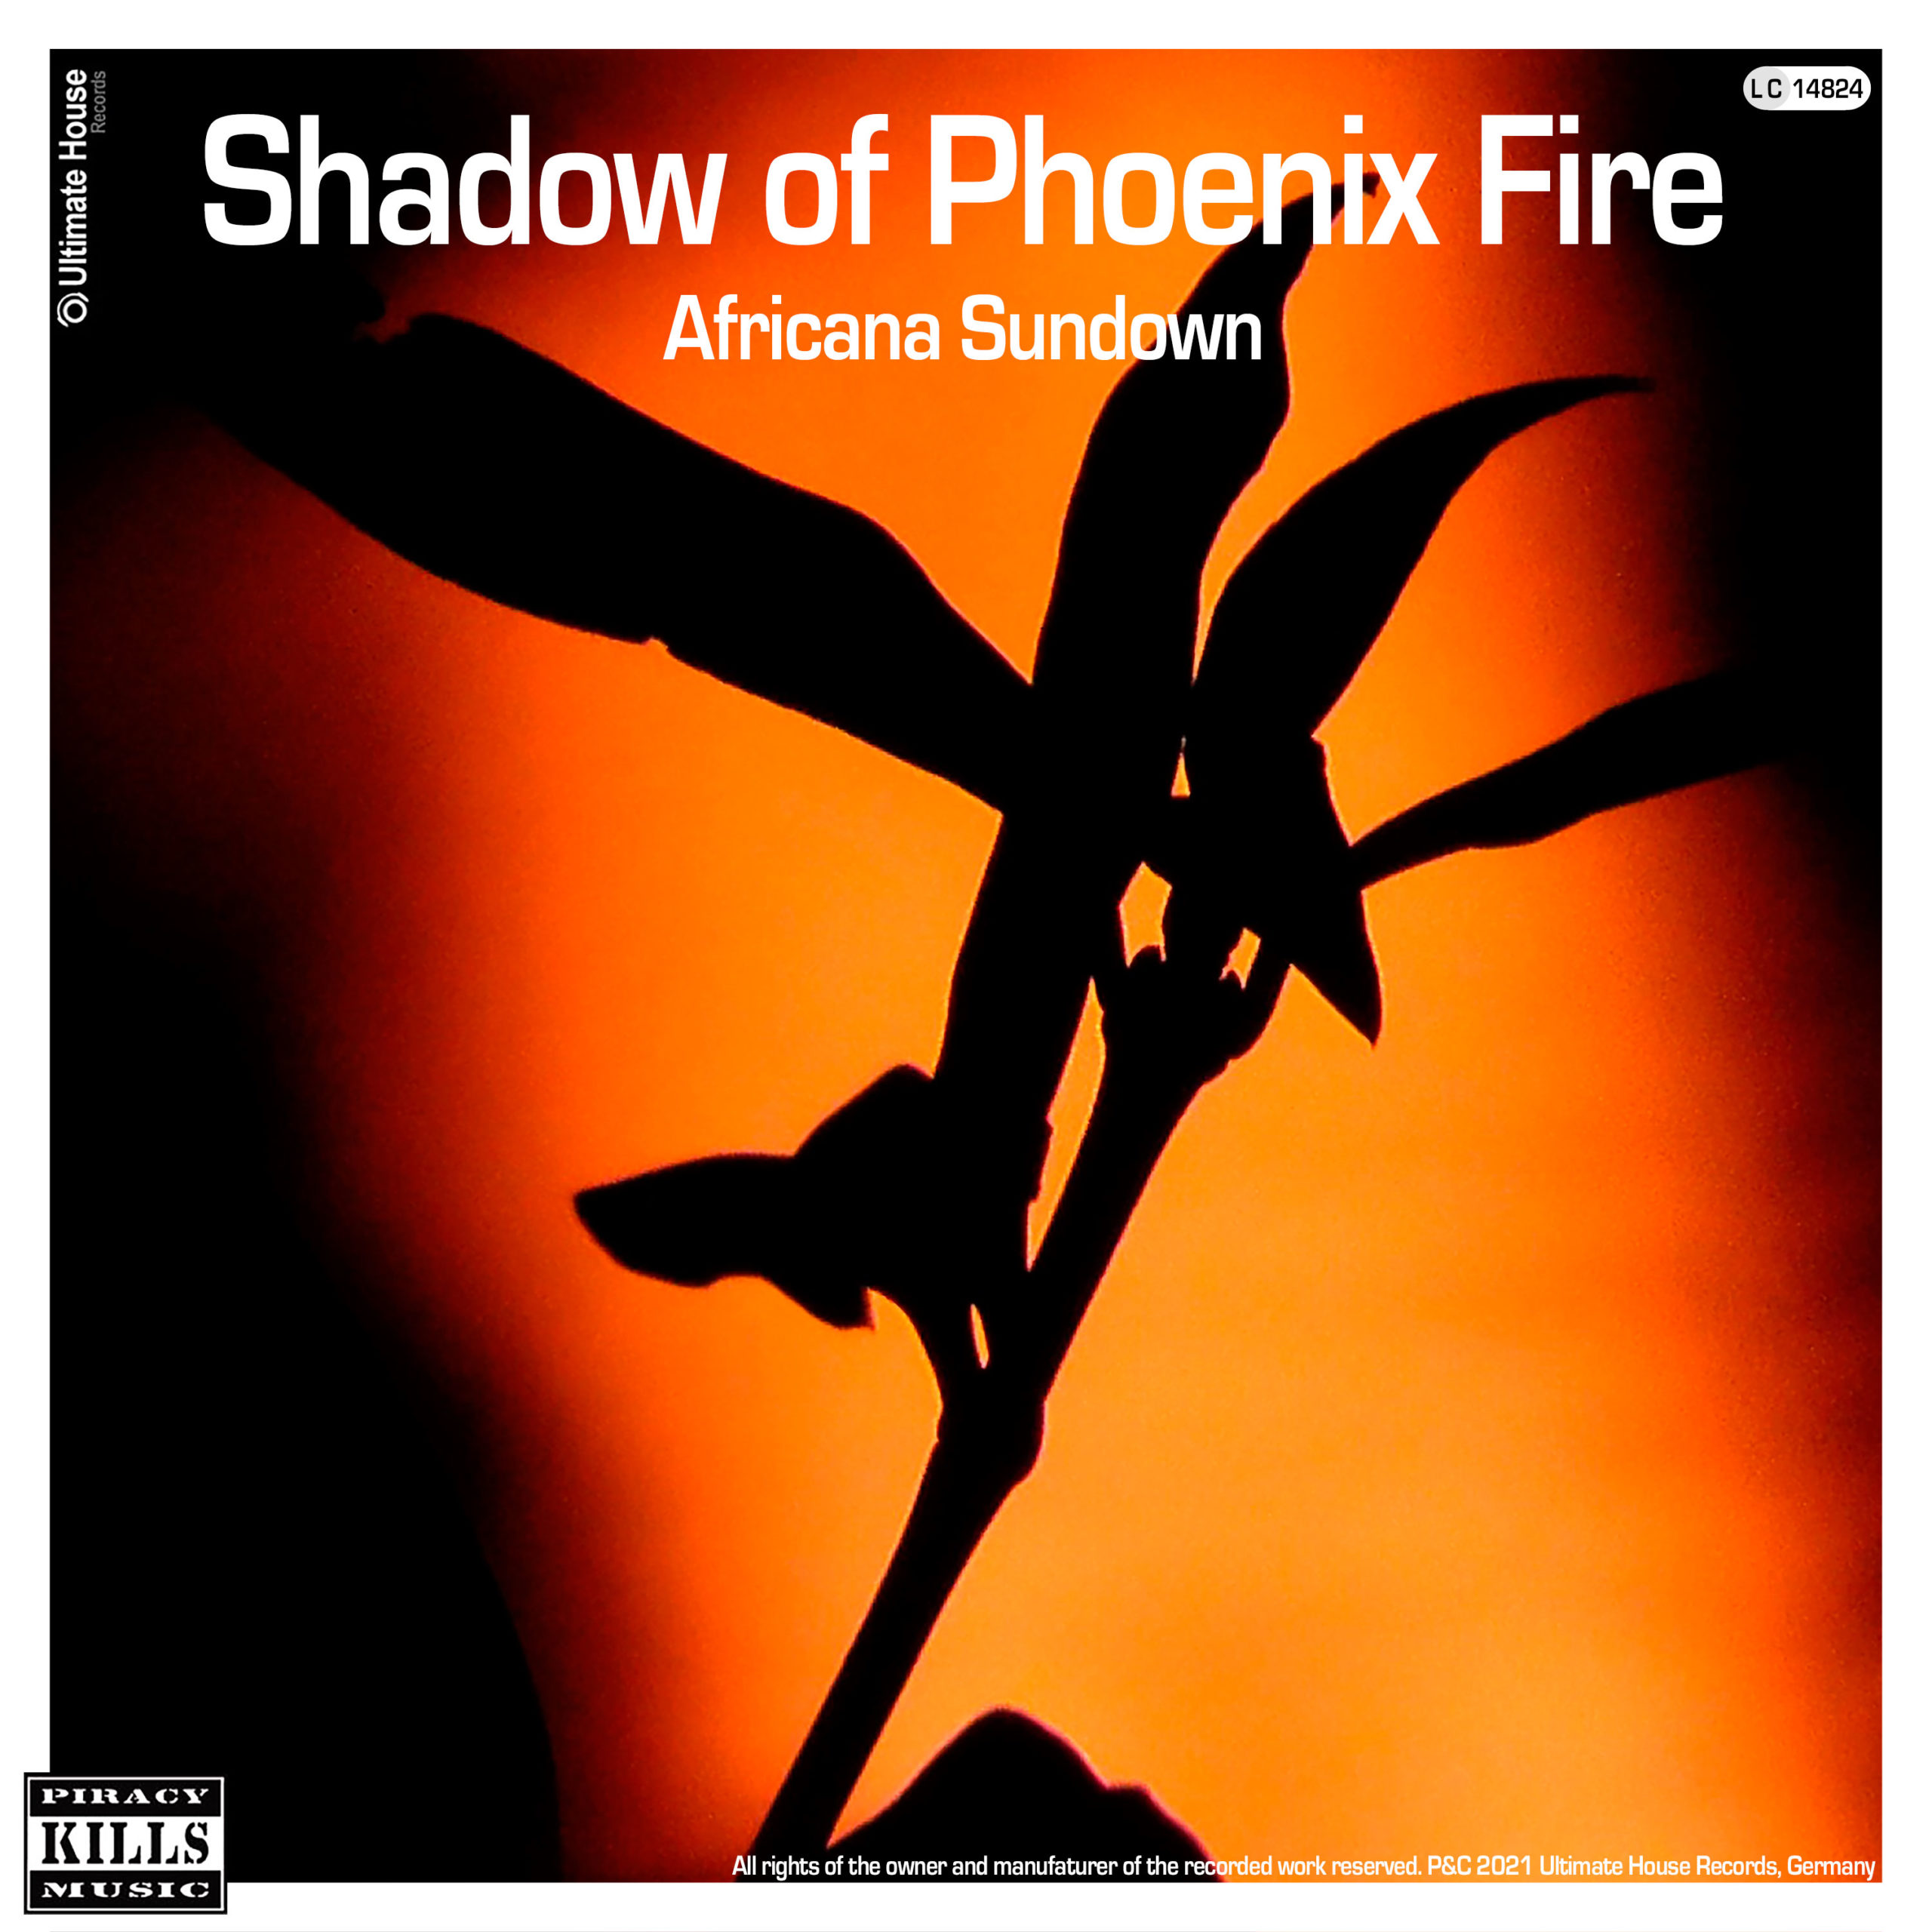 https://www.ultimate-house-records.com/wp-content/uploads/2021/05/147-Shadow_of_Phoenix_Fire-Cover_3000px_web-scaled.jpg